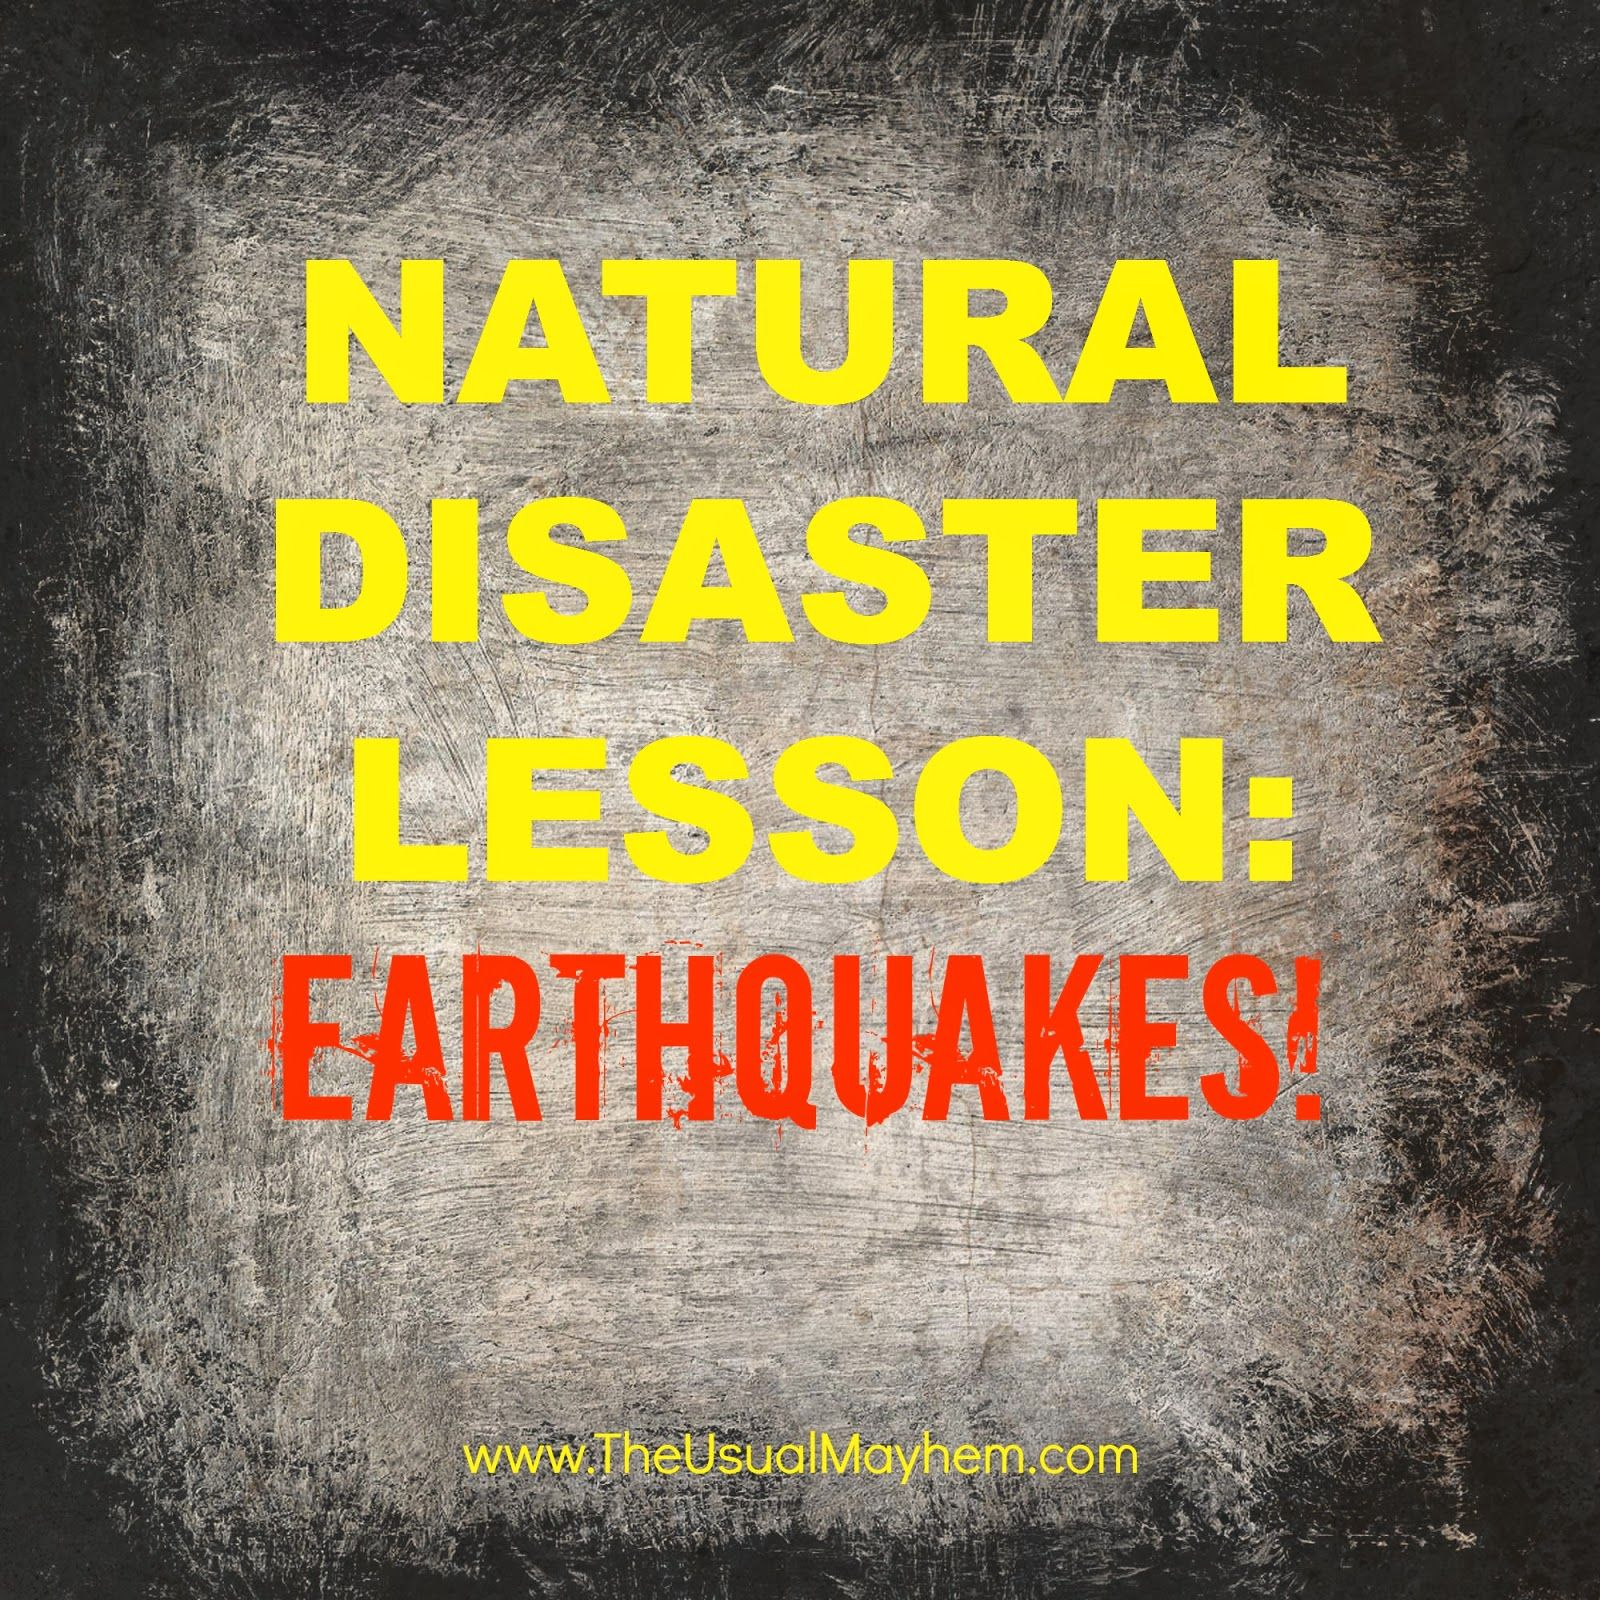 Creative writing on natural disasters